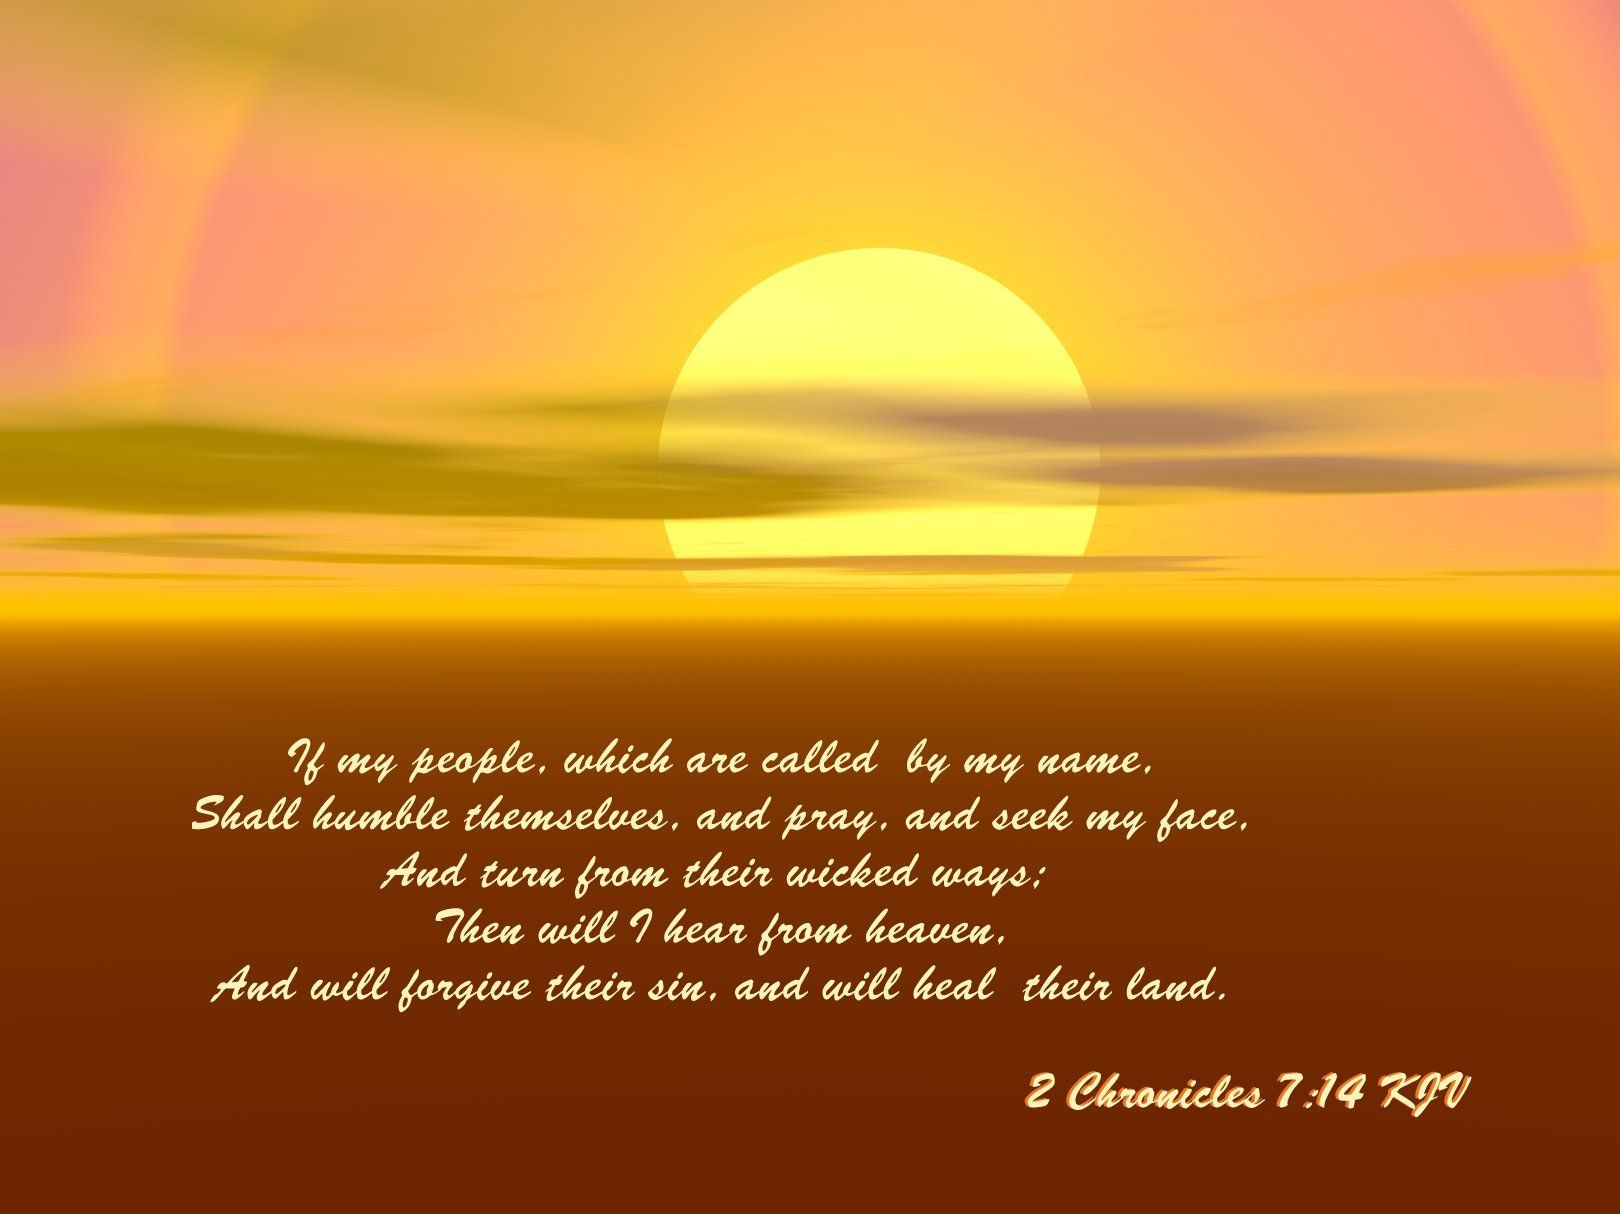 free christian desktop background downloads chronicles 714 humble and pray wallpaper background